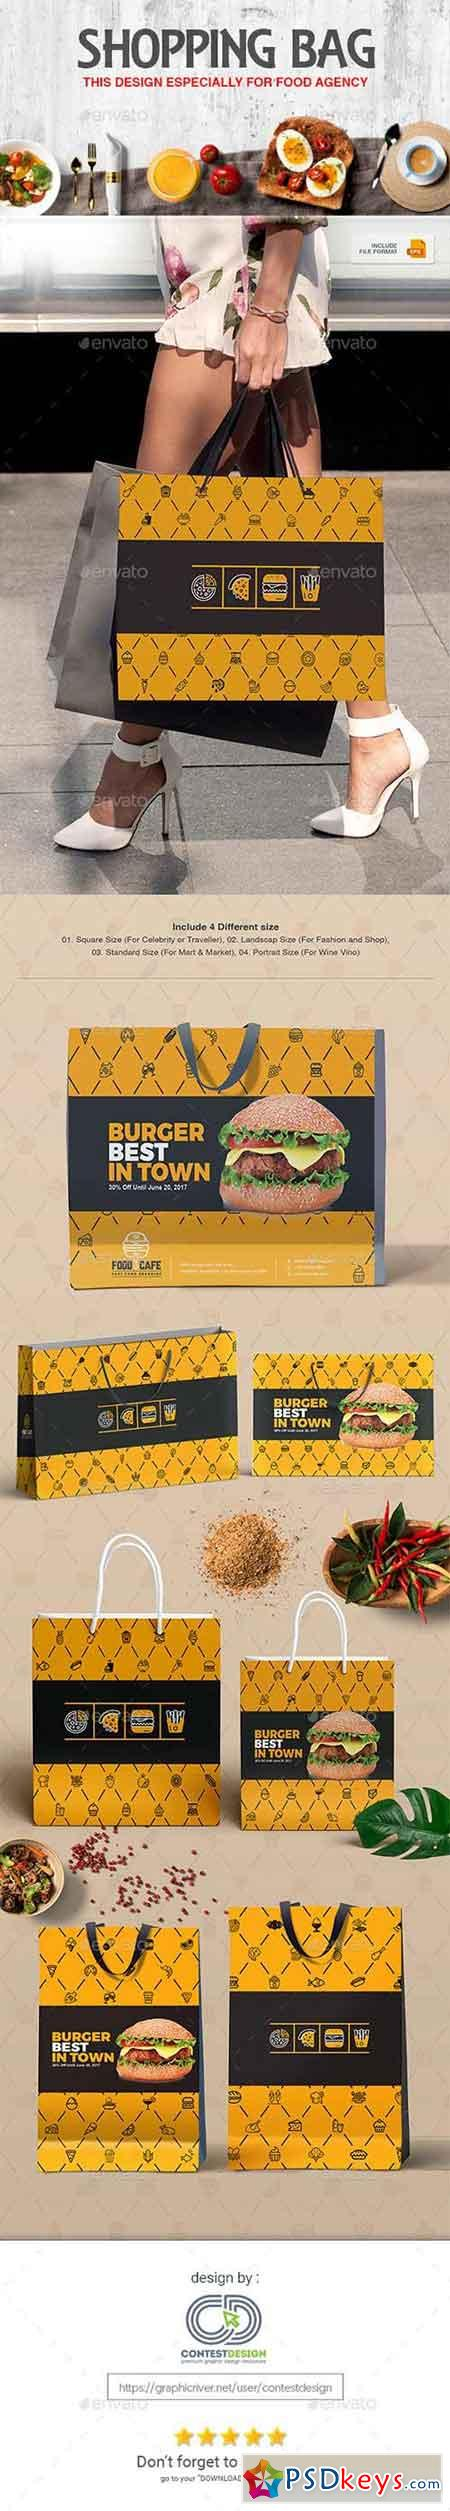 Shopping Bag Design Template for Fast Food Restaurants Cafe 20308815